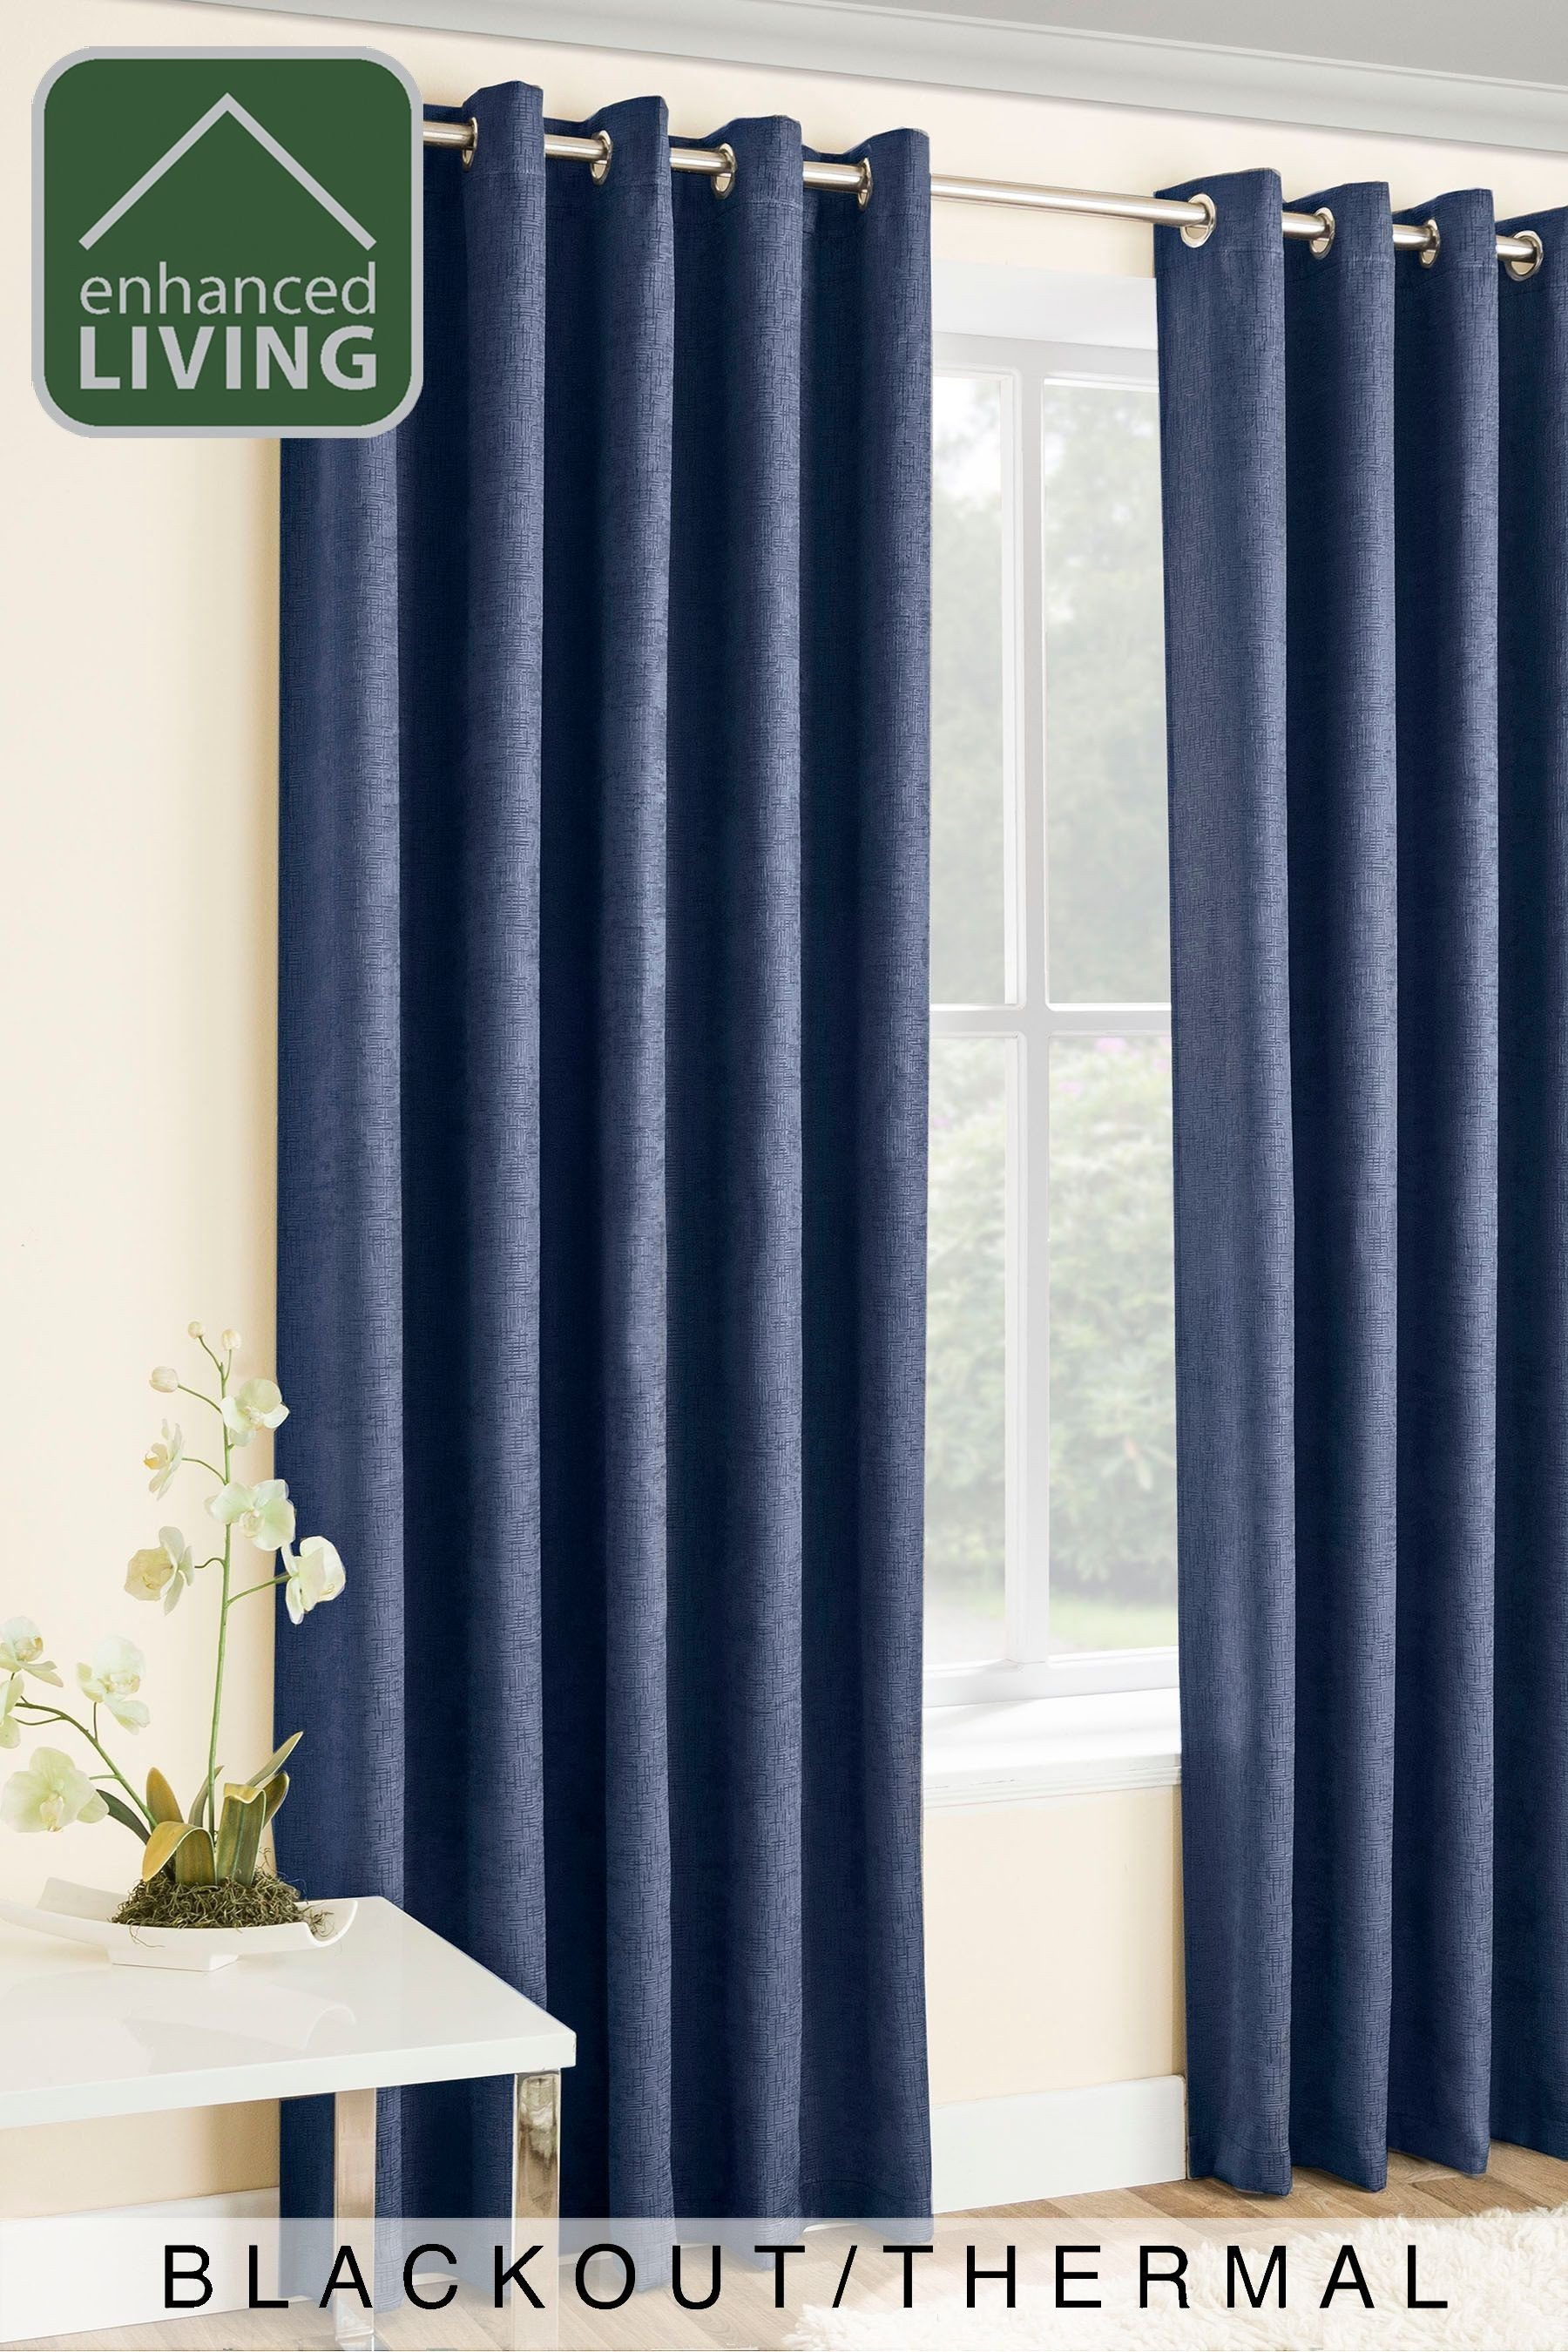 Blue Curtains for Bedroom Luxury Enhanced Living Lined thermal Blackout Curtains